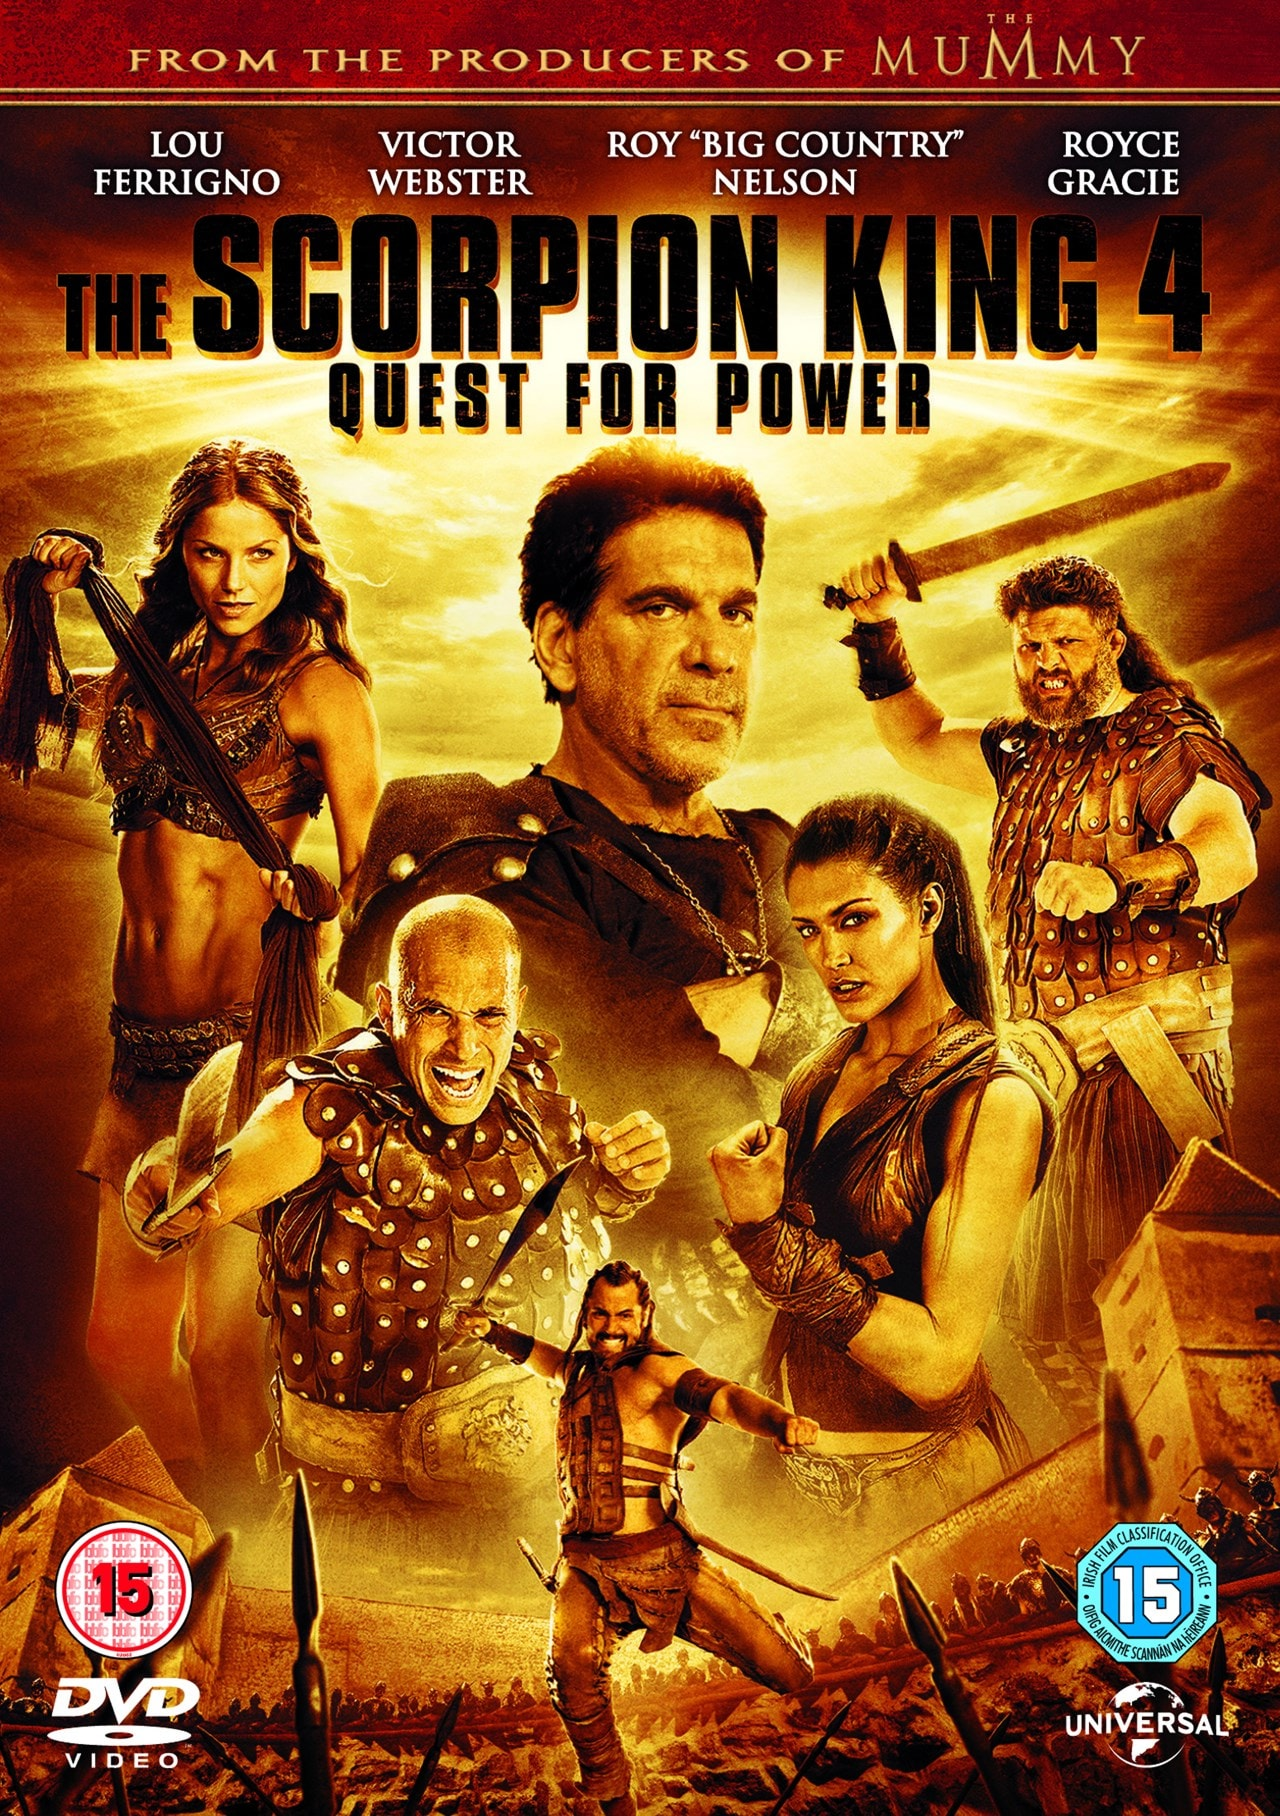 The Scorpion King 4 - Quest for Power - 1